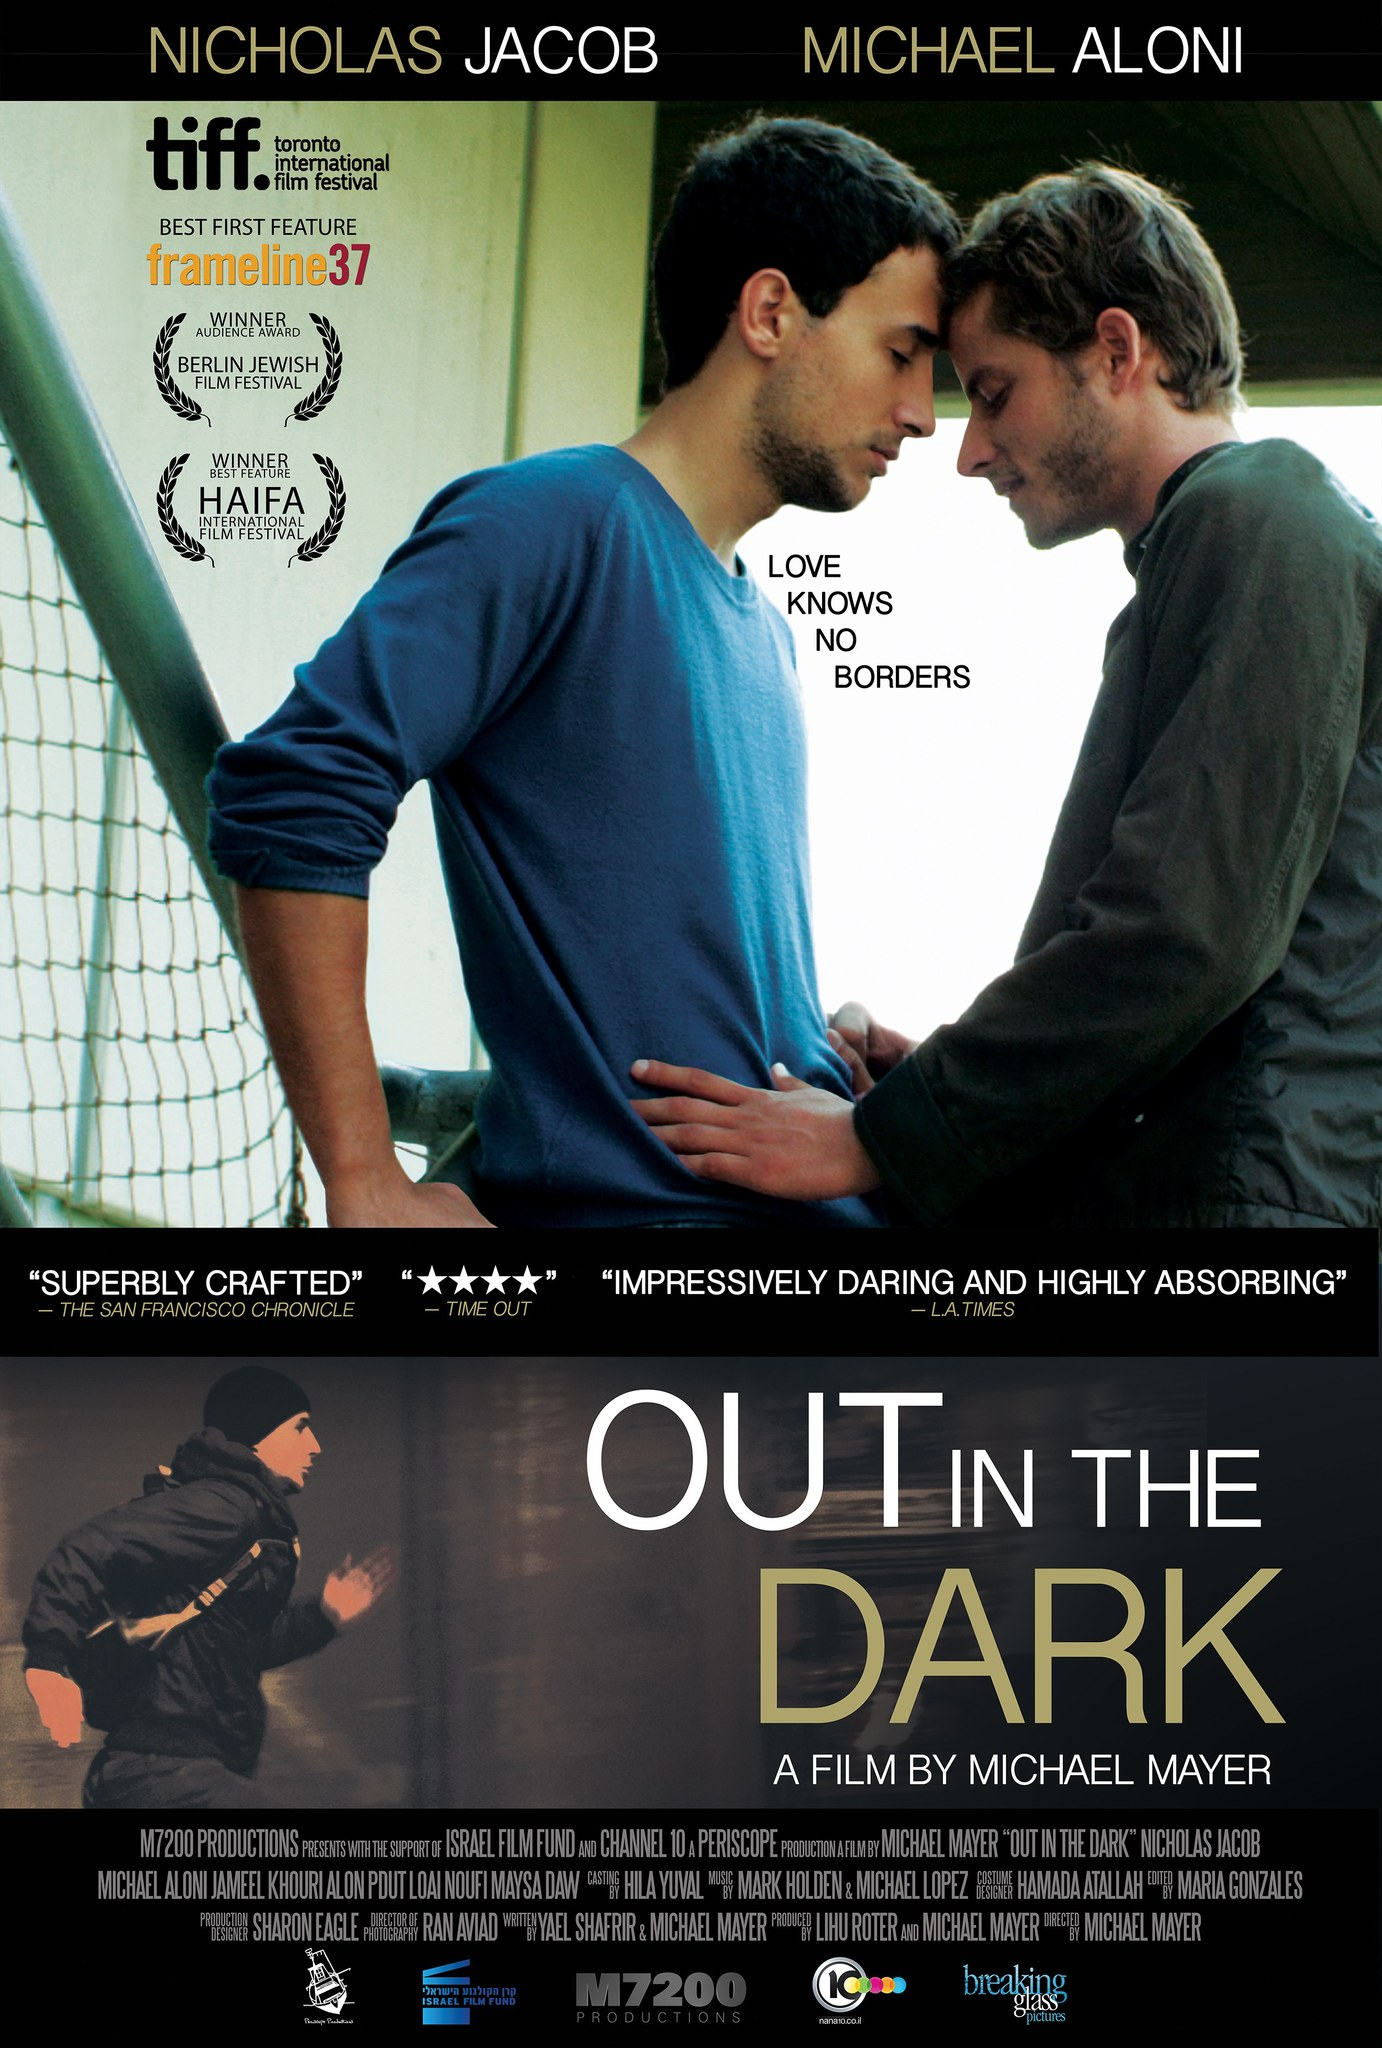 Watch gay themed movies online free